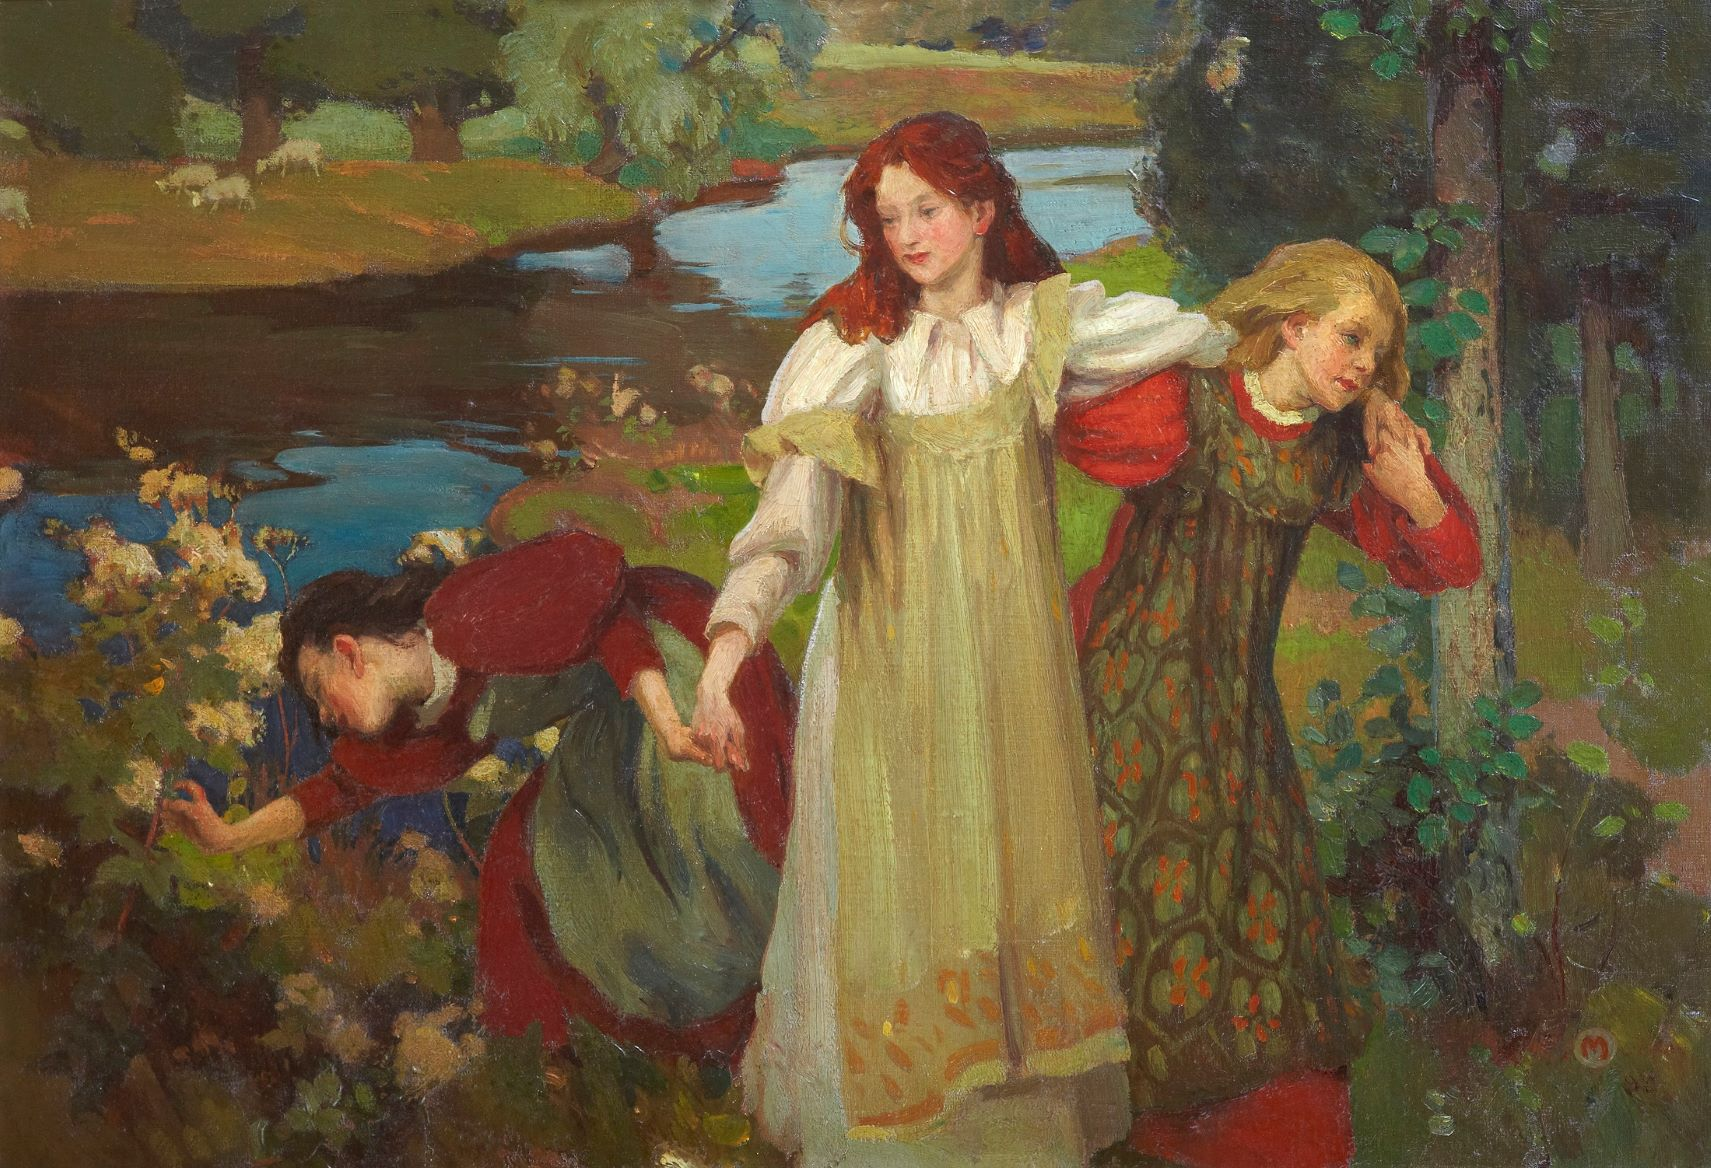 Charles H. Mackie There were Three Maidens pud a Flower (By the Bonnie Banks o Fordie) c.1897